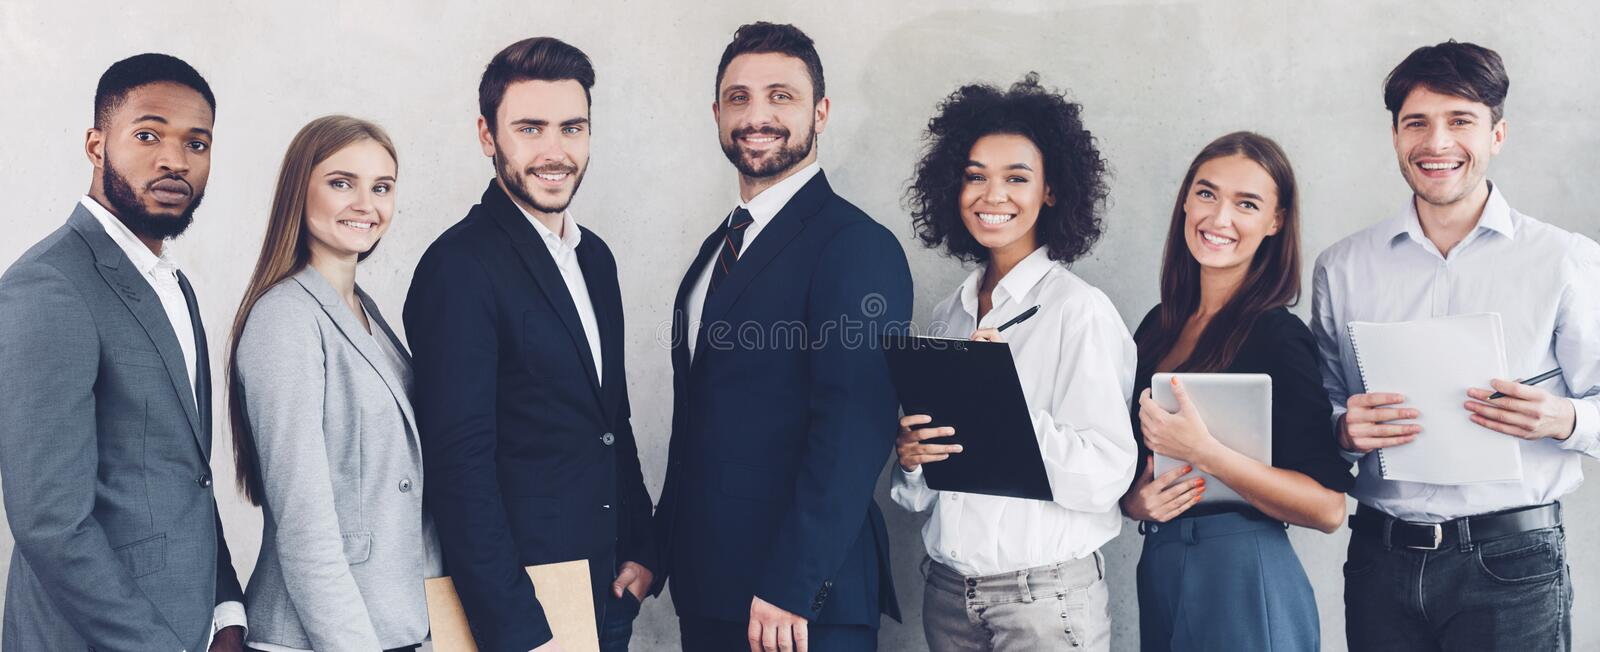 Successful business colleagues looking at camera in office royalty free stock image